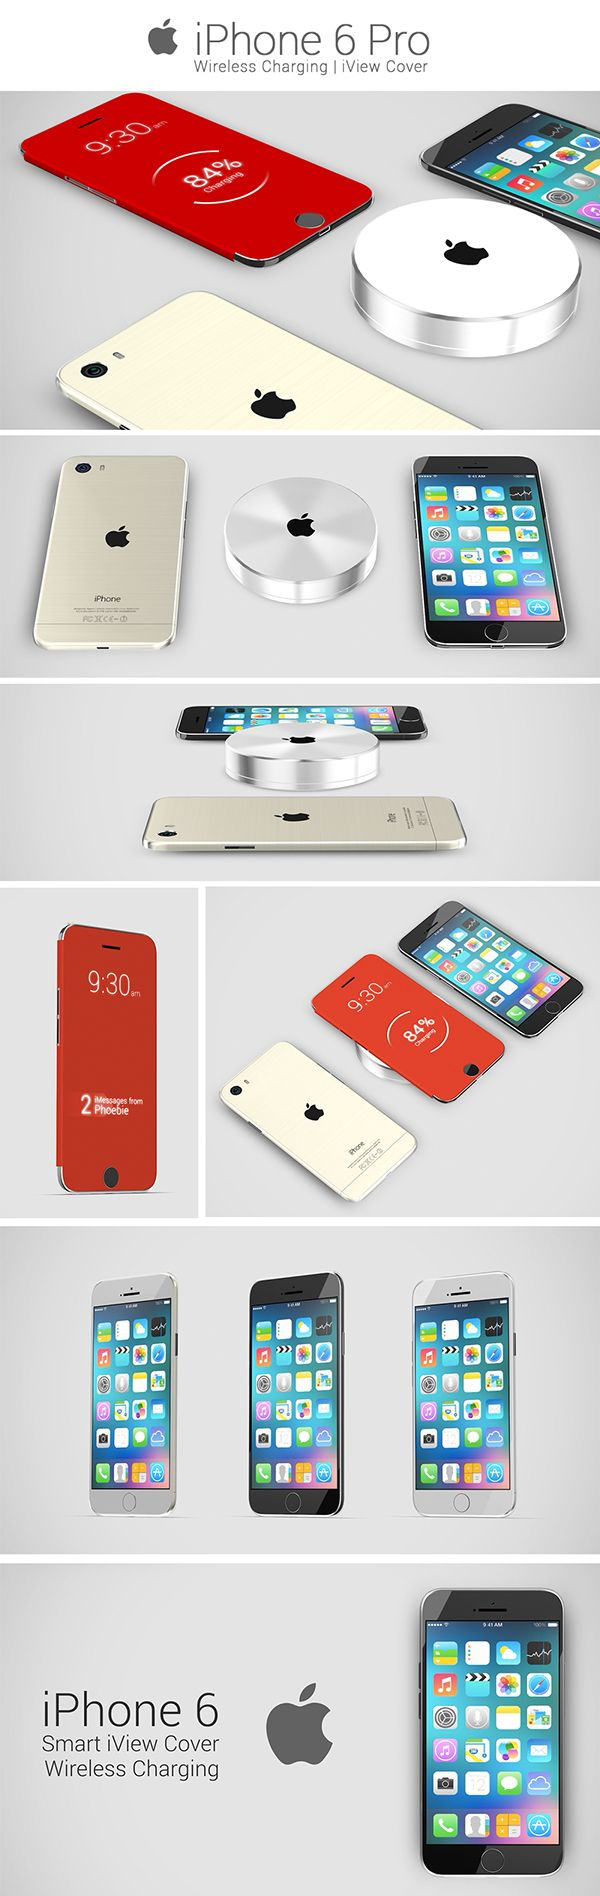 This 'iPhone 6' Concept Includes Wireless Charging And A Surprise Accessory